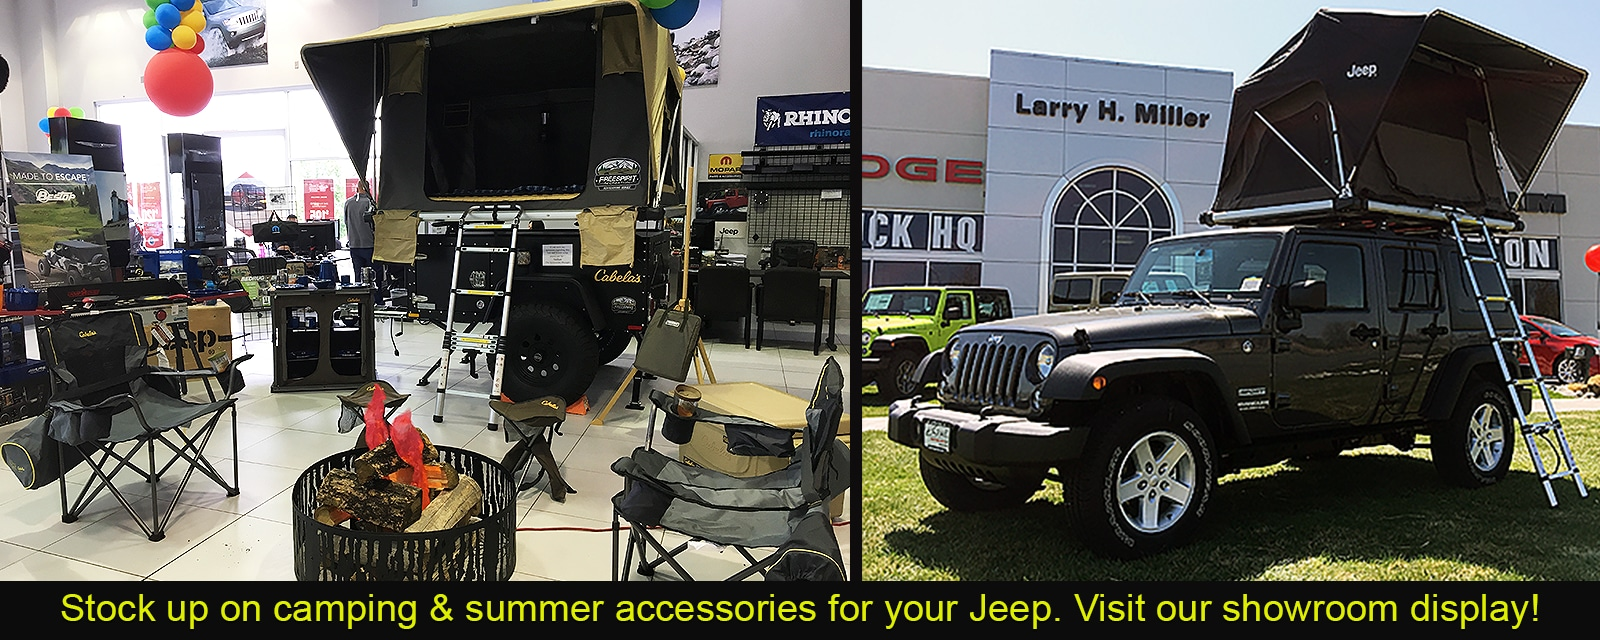 Jeep Camping Gear and Accessories Denver CO